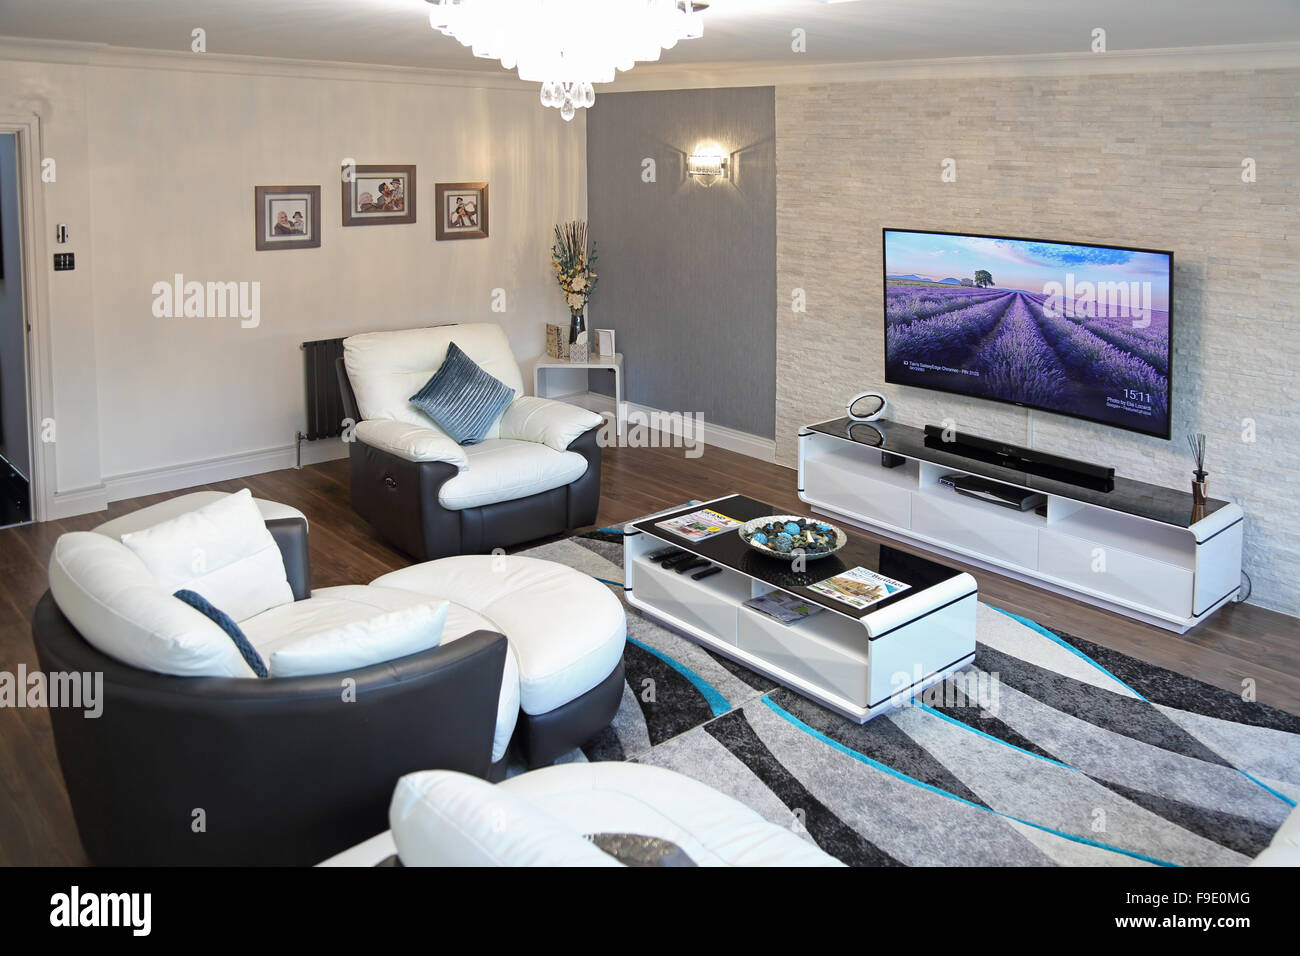 The living room of a newly refurbished house with two-tone leather sofas and large, wall-mounted flat-screen TV - Stock Image